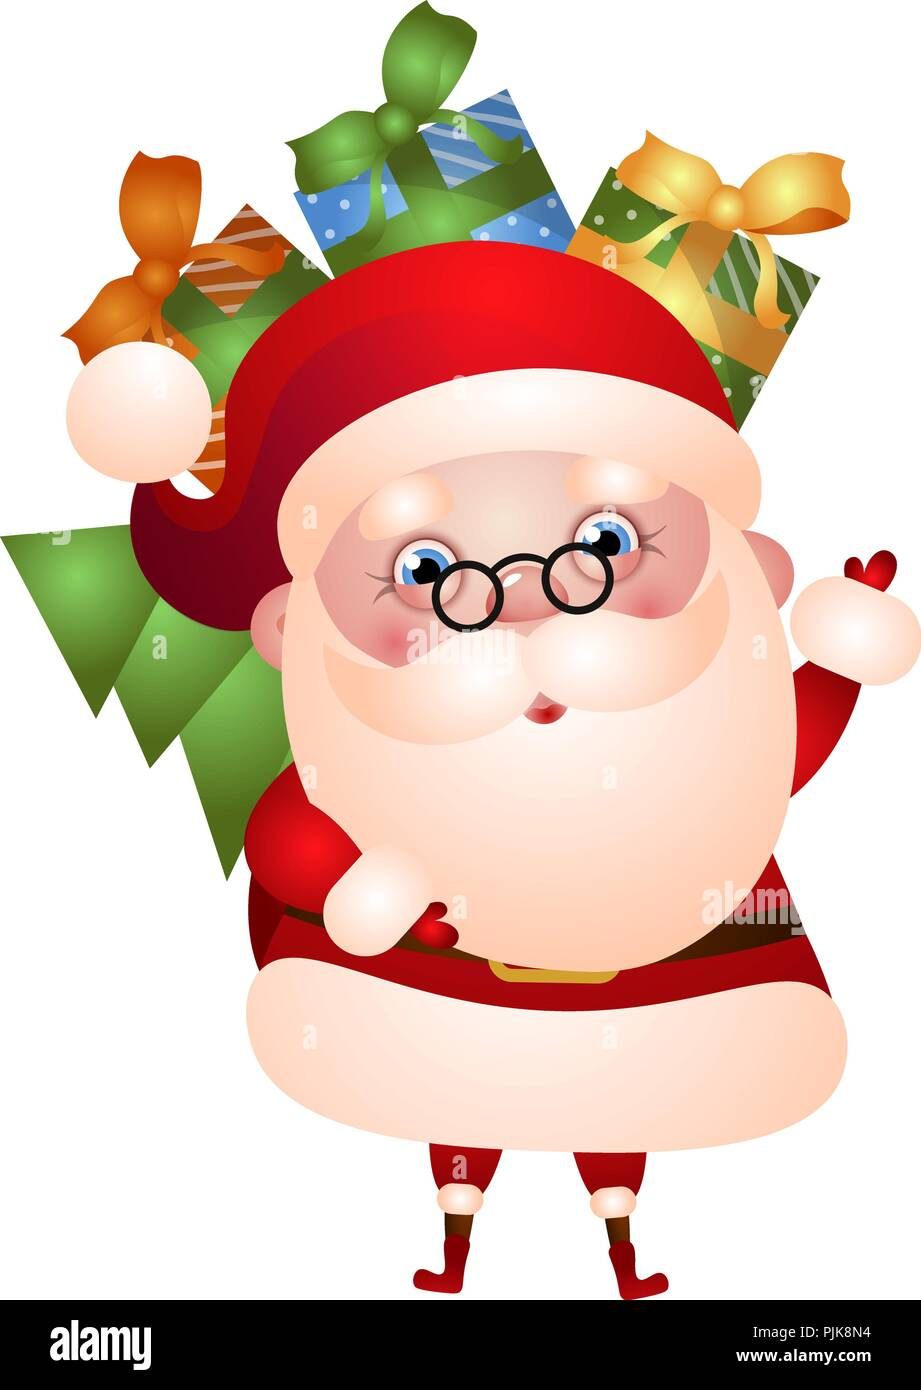 Christmas Pictures Cartoon.Illustration Santa Claus Is Carrying A Bag Of Gifts And